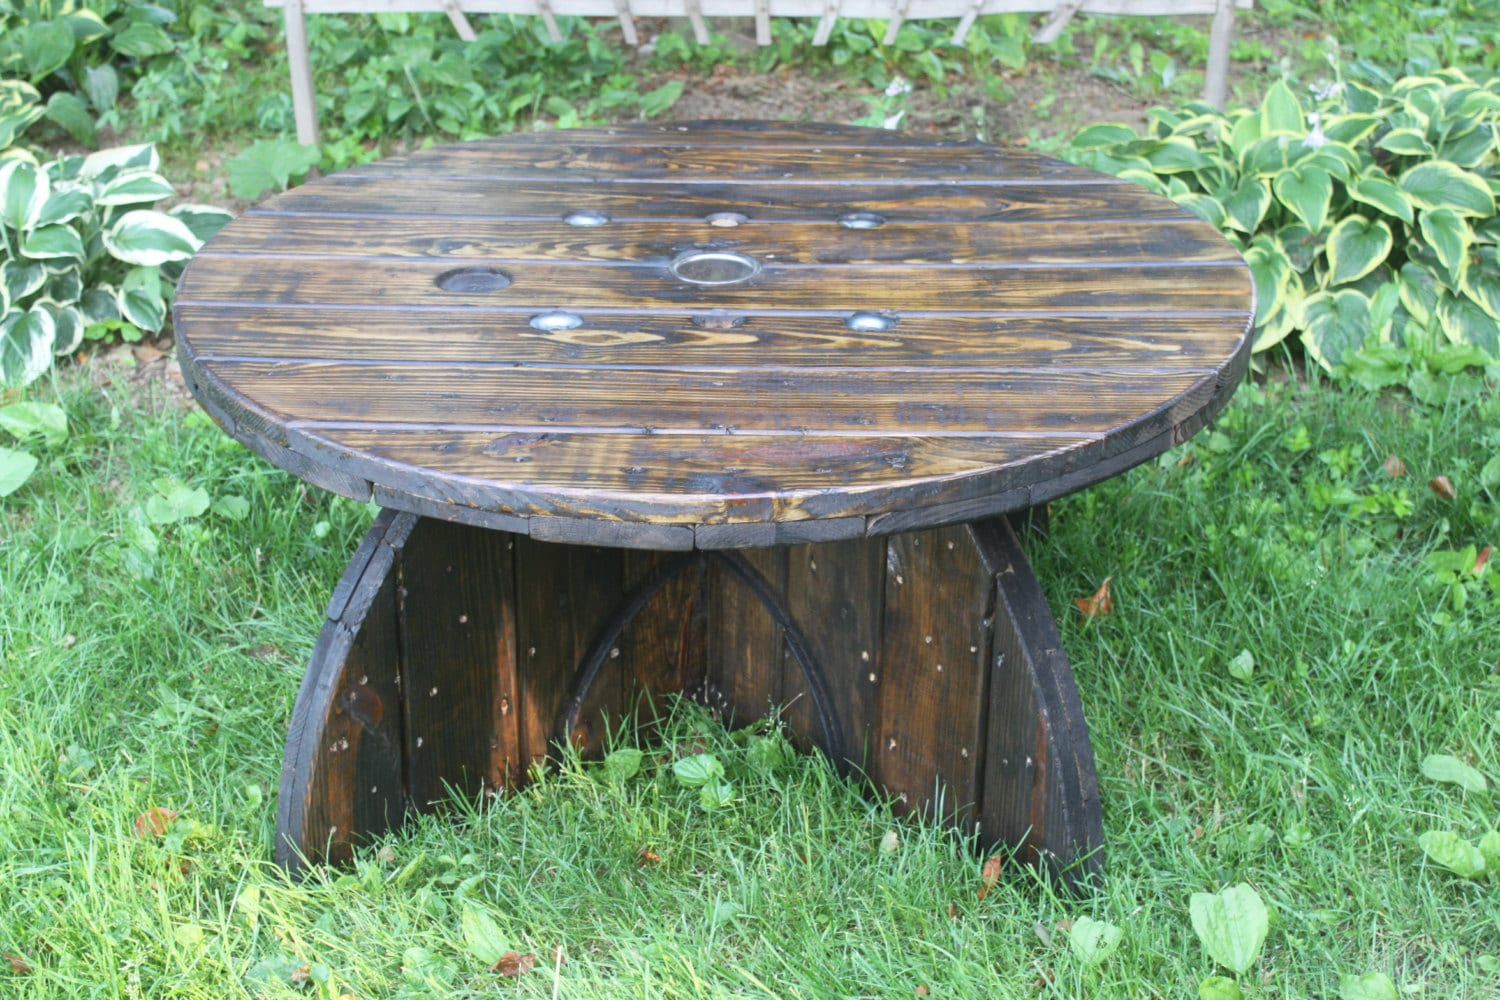 Wooden spool table wire spool furniture indoor outdoor for Outdoor tables made out of wooden wire spools